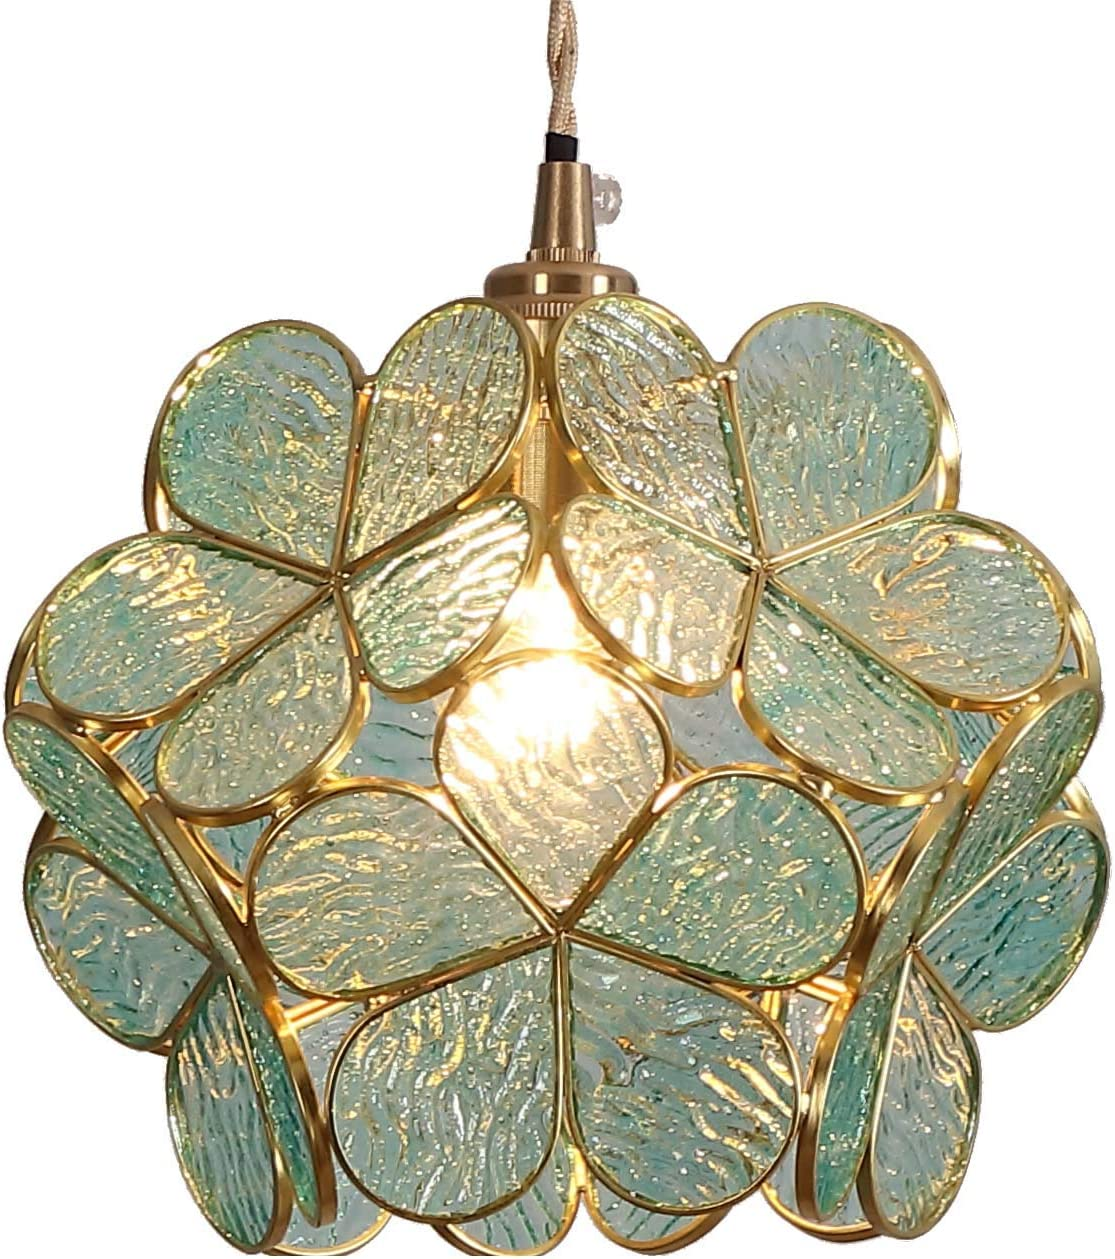 Bieye L10743 Flower Petals Tiffany Style Stained Glass Ceiling Pendant Light with 8-inch Wide Lampshade Light Blue